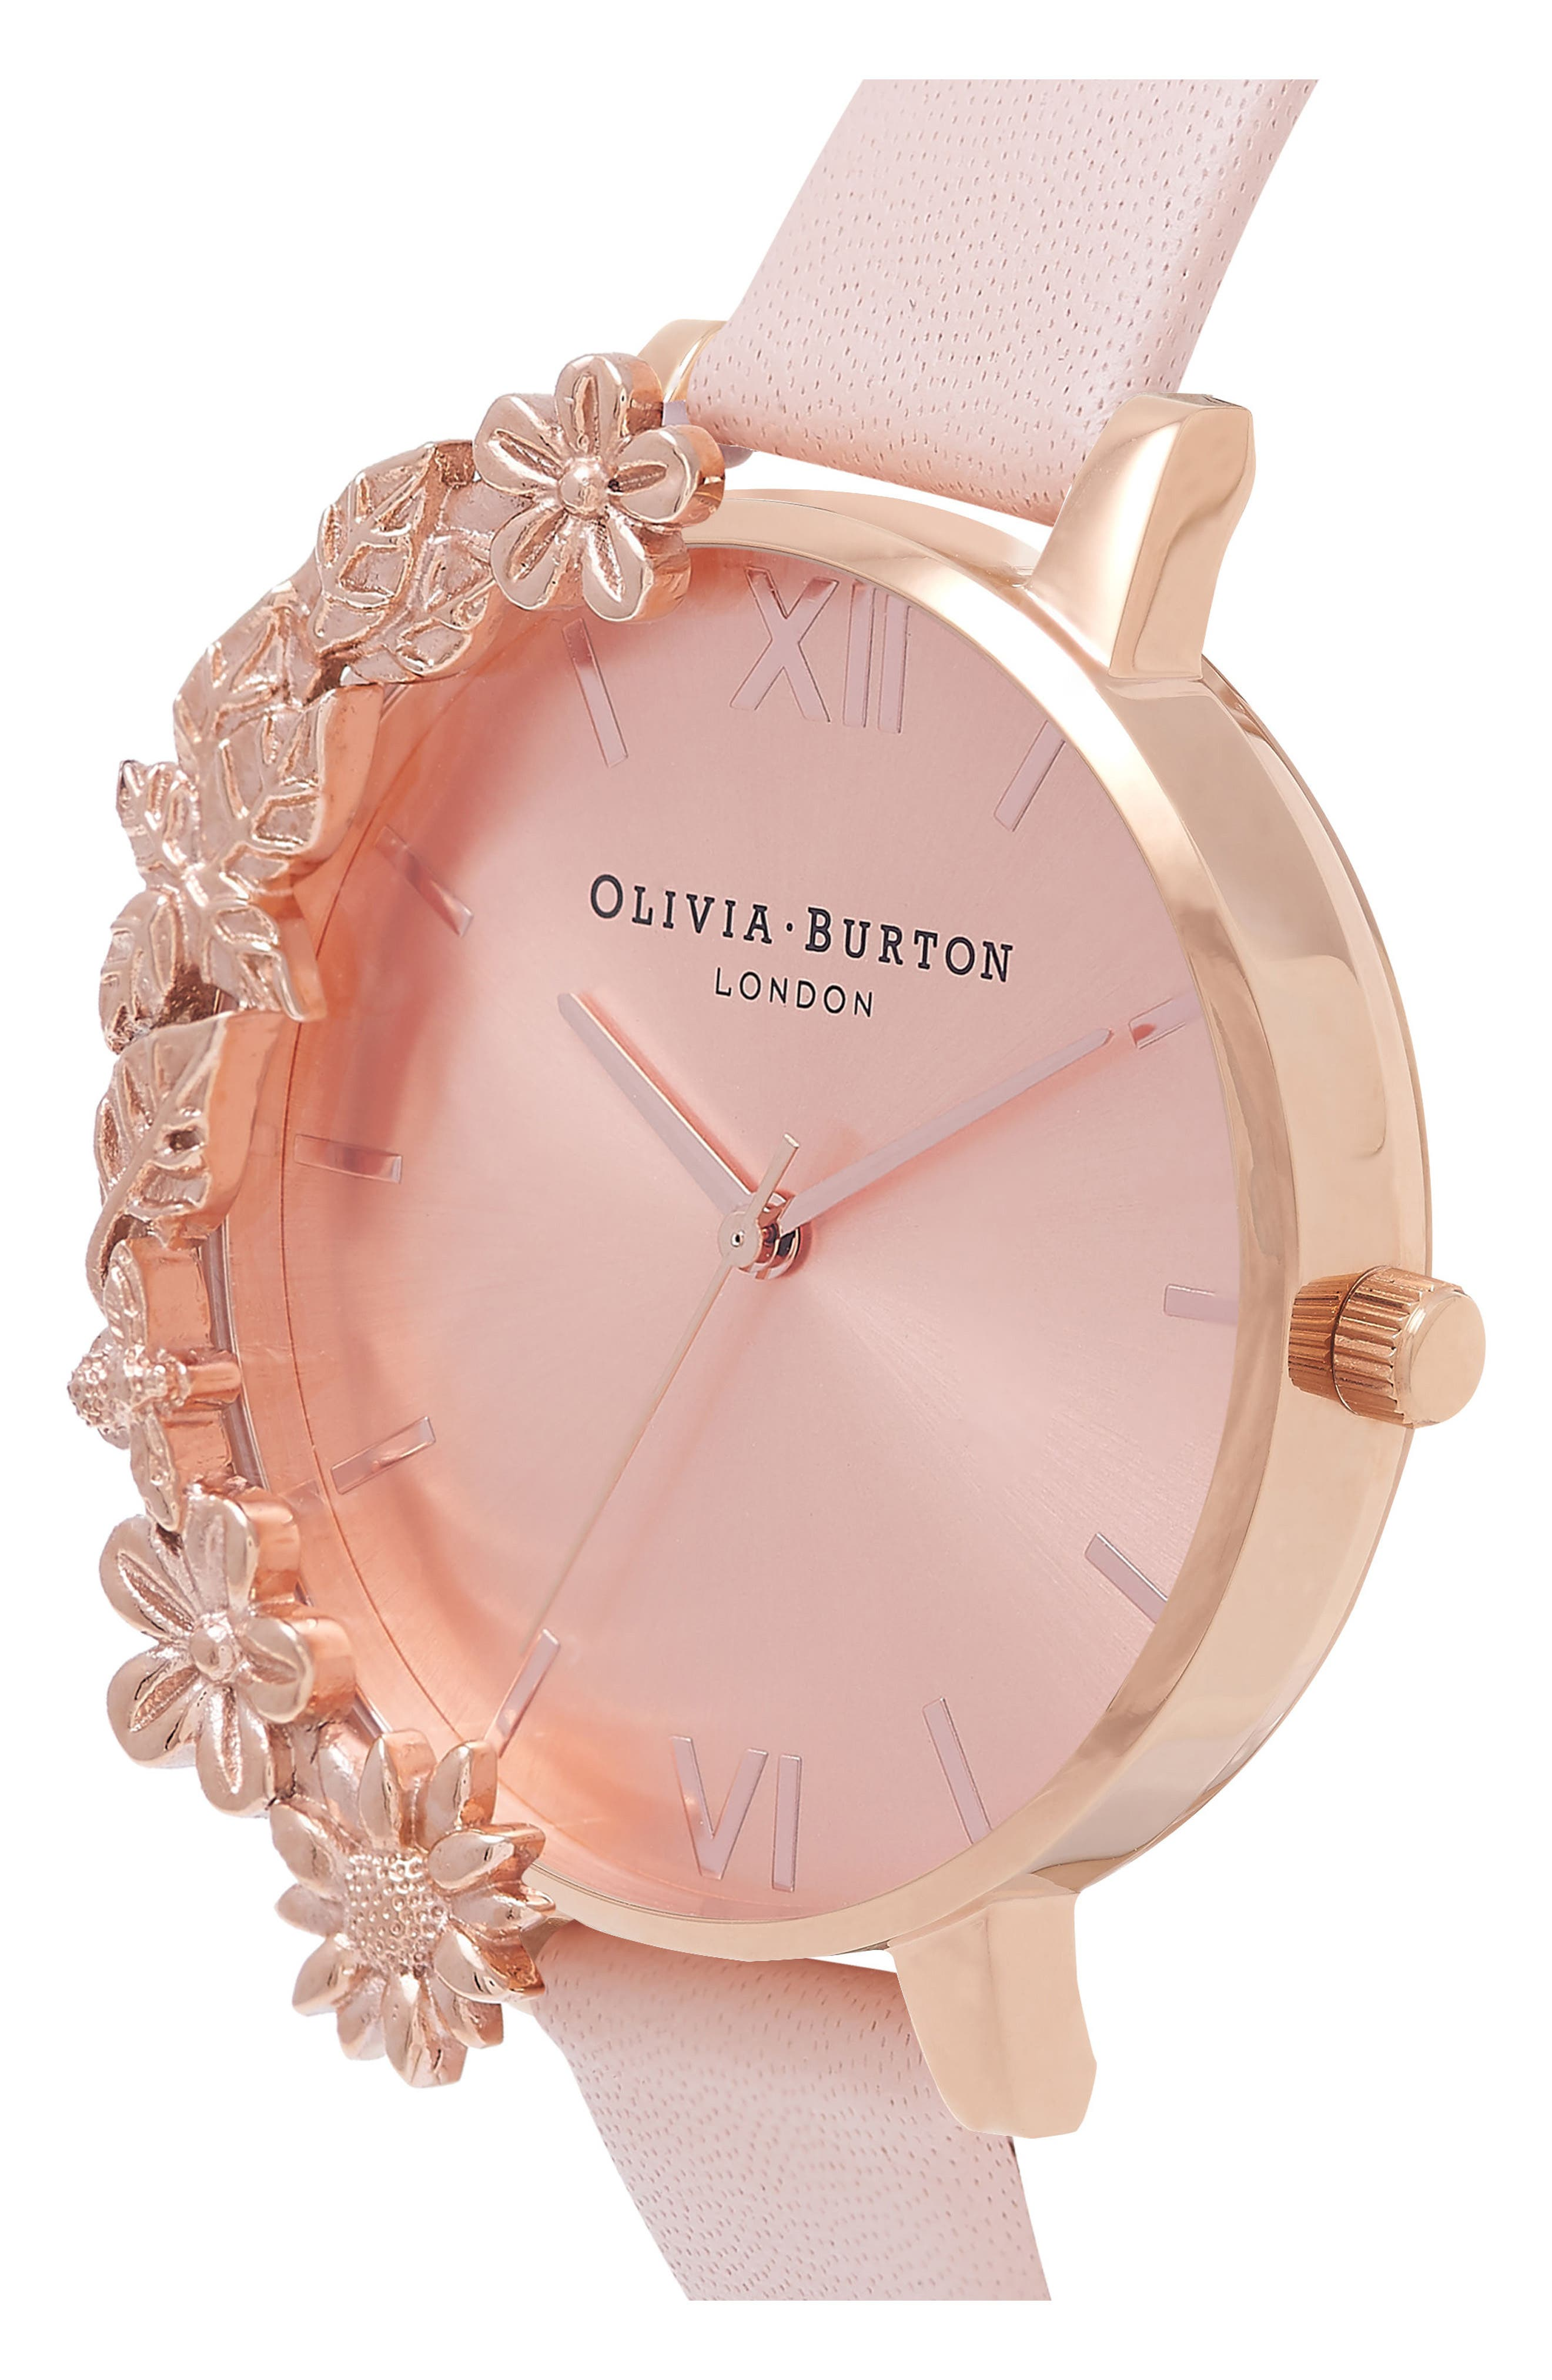 OLIVIA BURTON, Case Cuff Leather Strap Watch, 38mm, Alternate thumbnail 3, color, ROSE GOLD